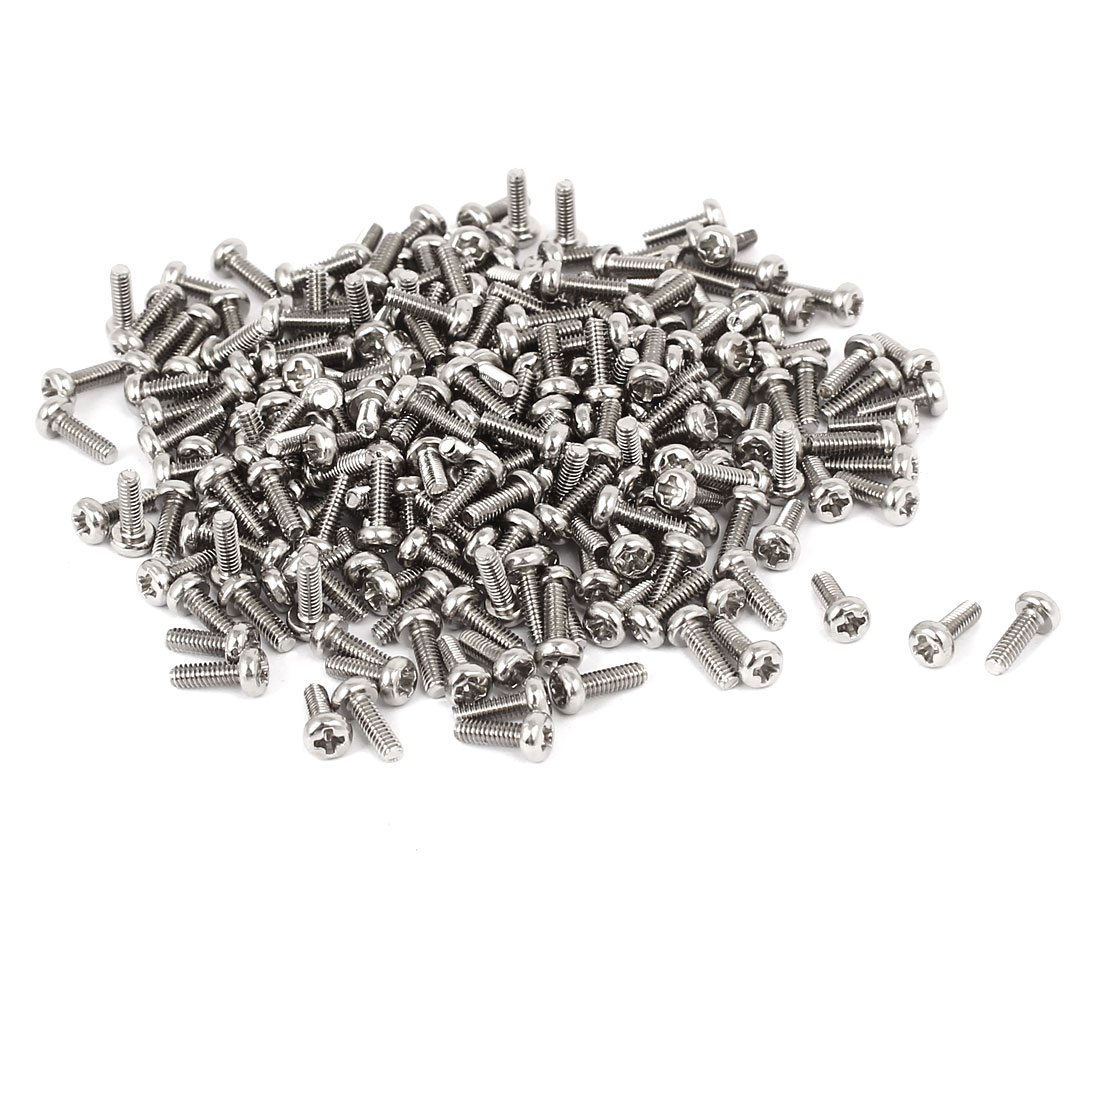 PM2 x 6mm Metal Phillips Notebook Laptop Computer Screw Silver Tone 300pcs